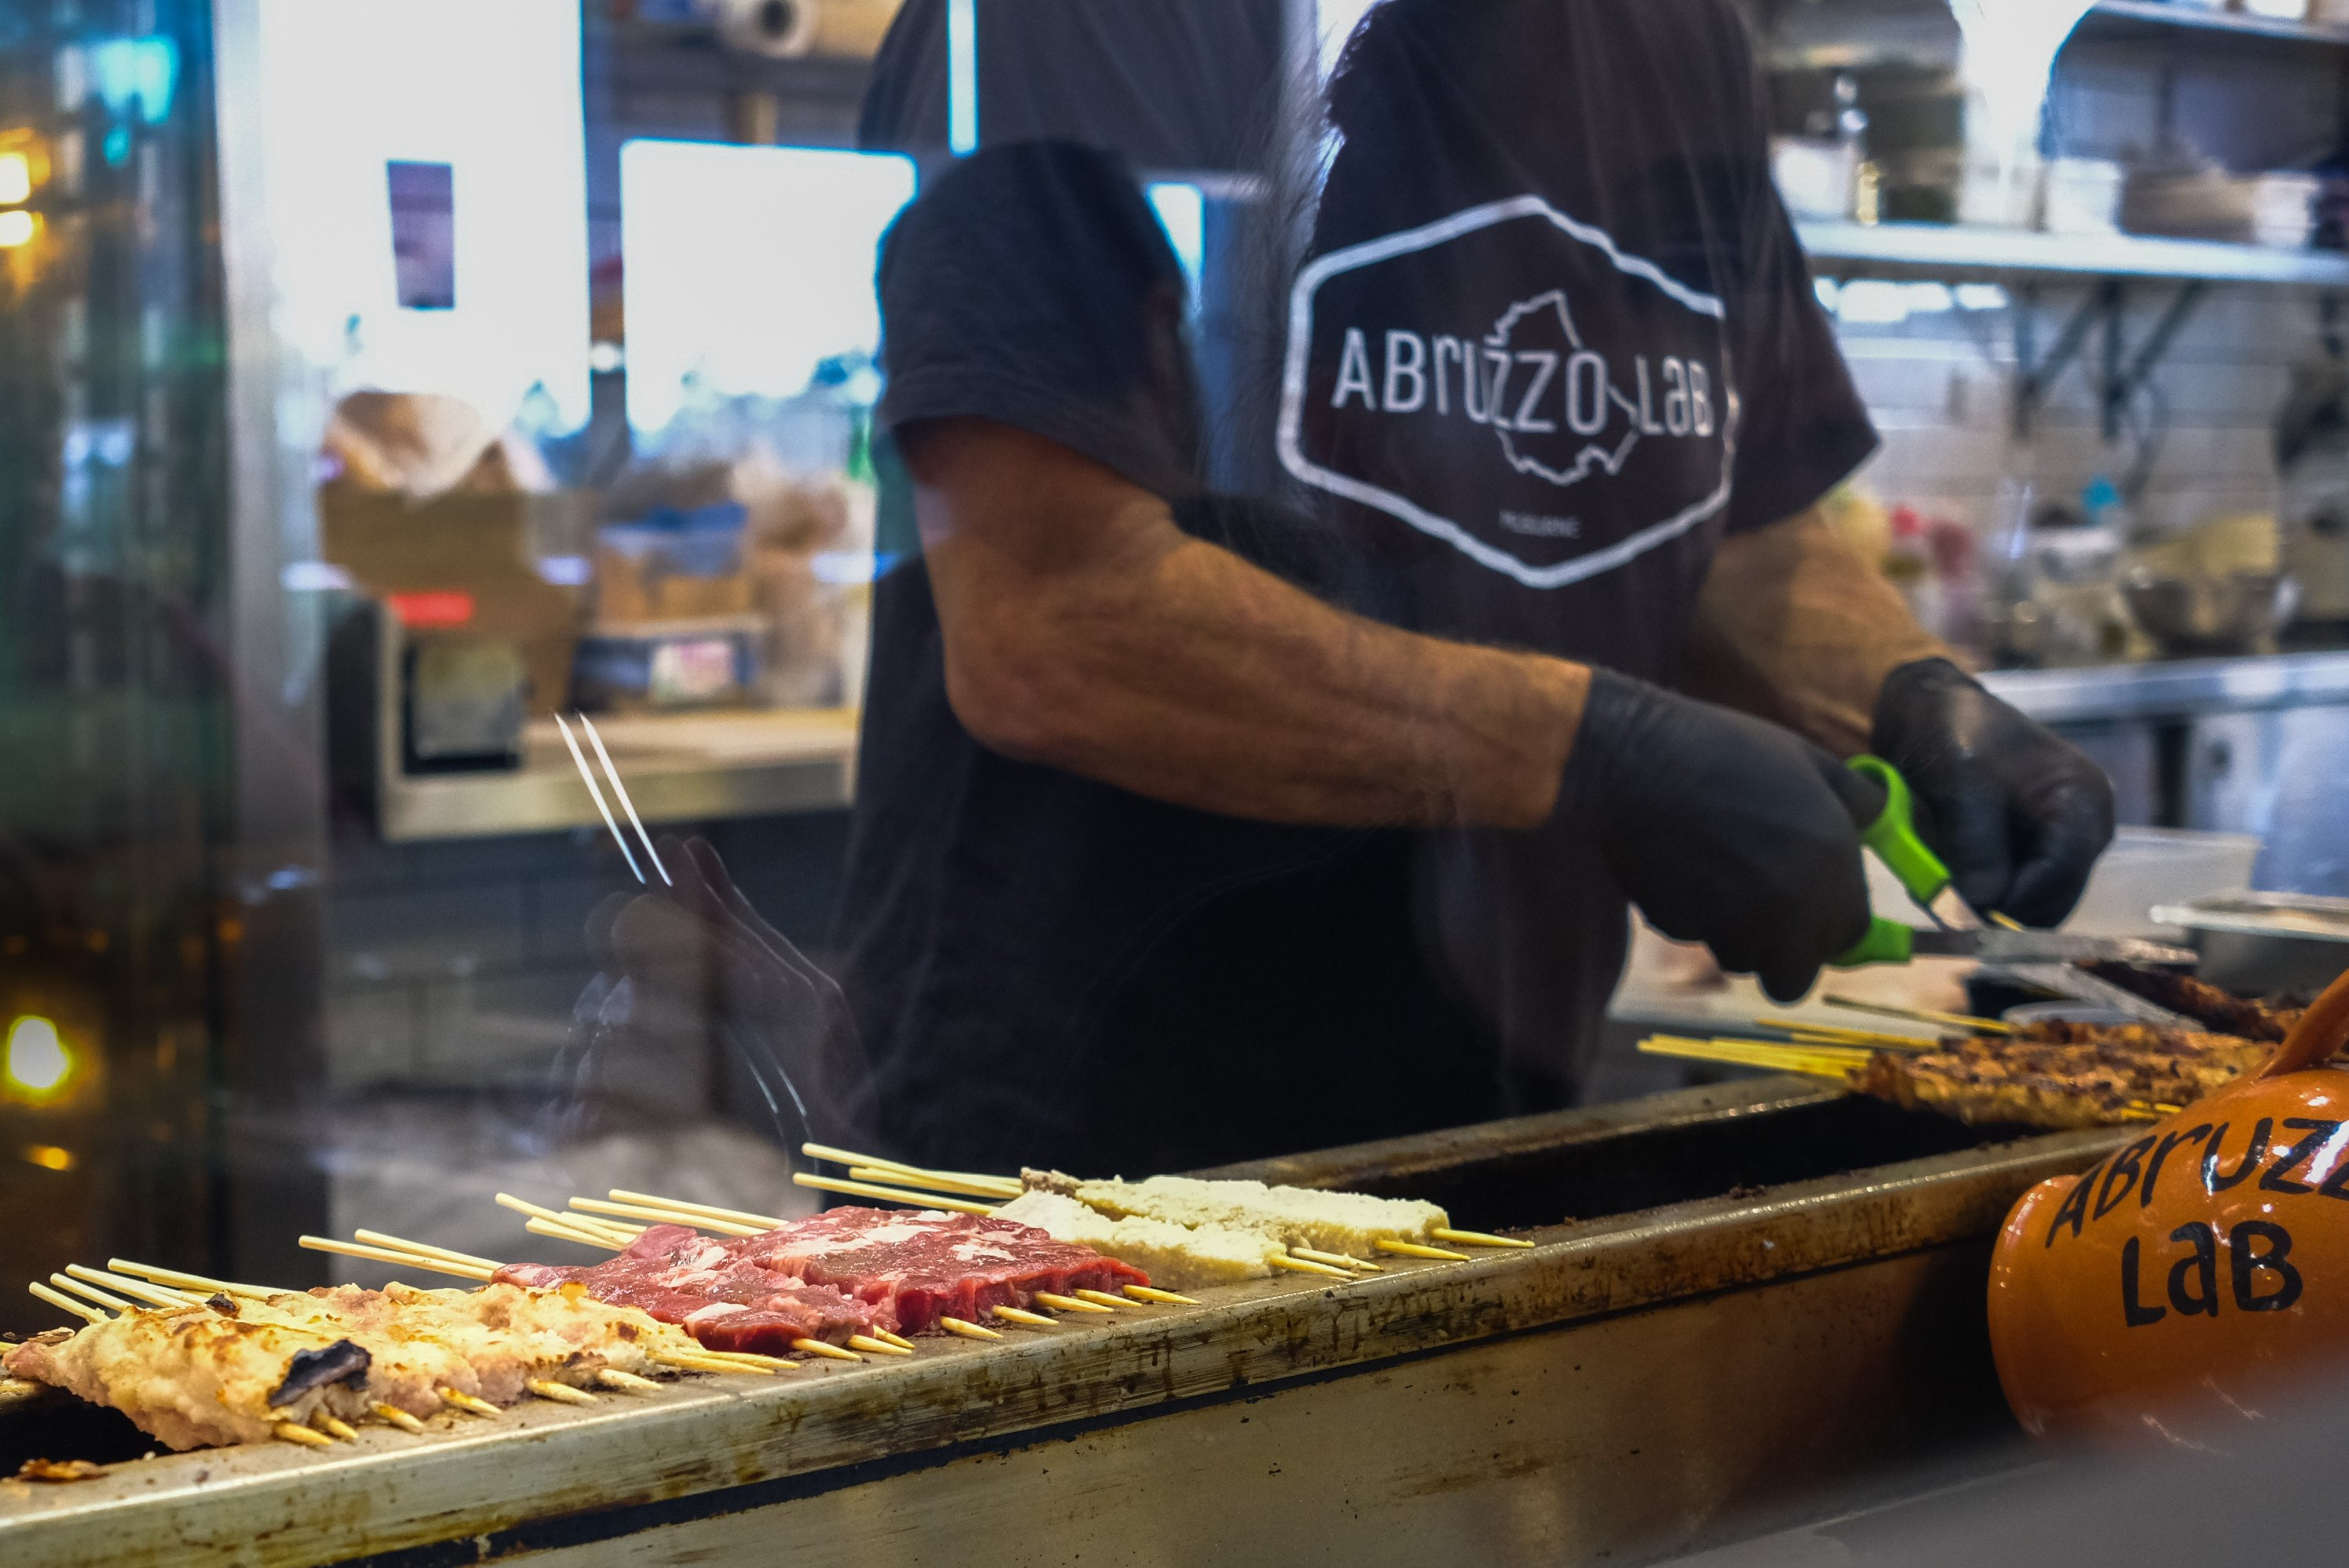 Article image for Scorcher reviews: Abruzzo Lab – 'Australia's first dedicated arrosticini restaurant'